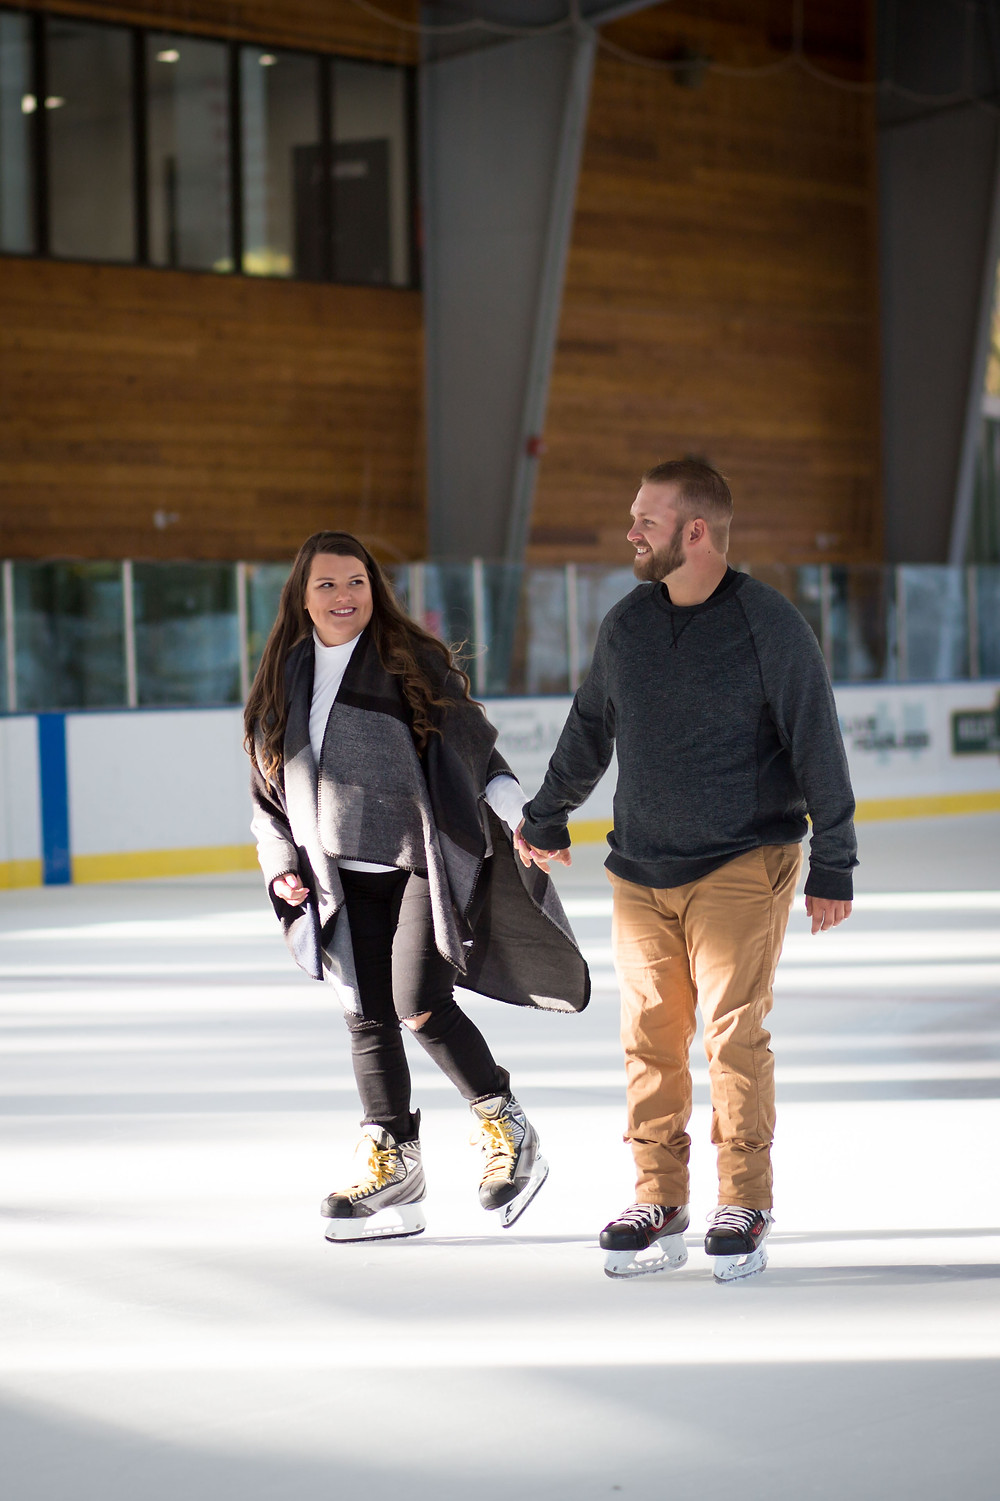 fun engagement session idea ice skating healthy zone rink in East Aurora NY